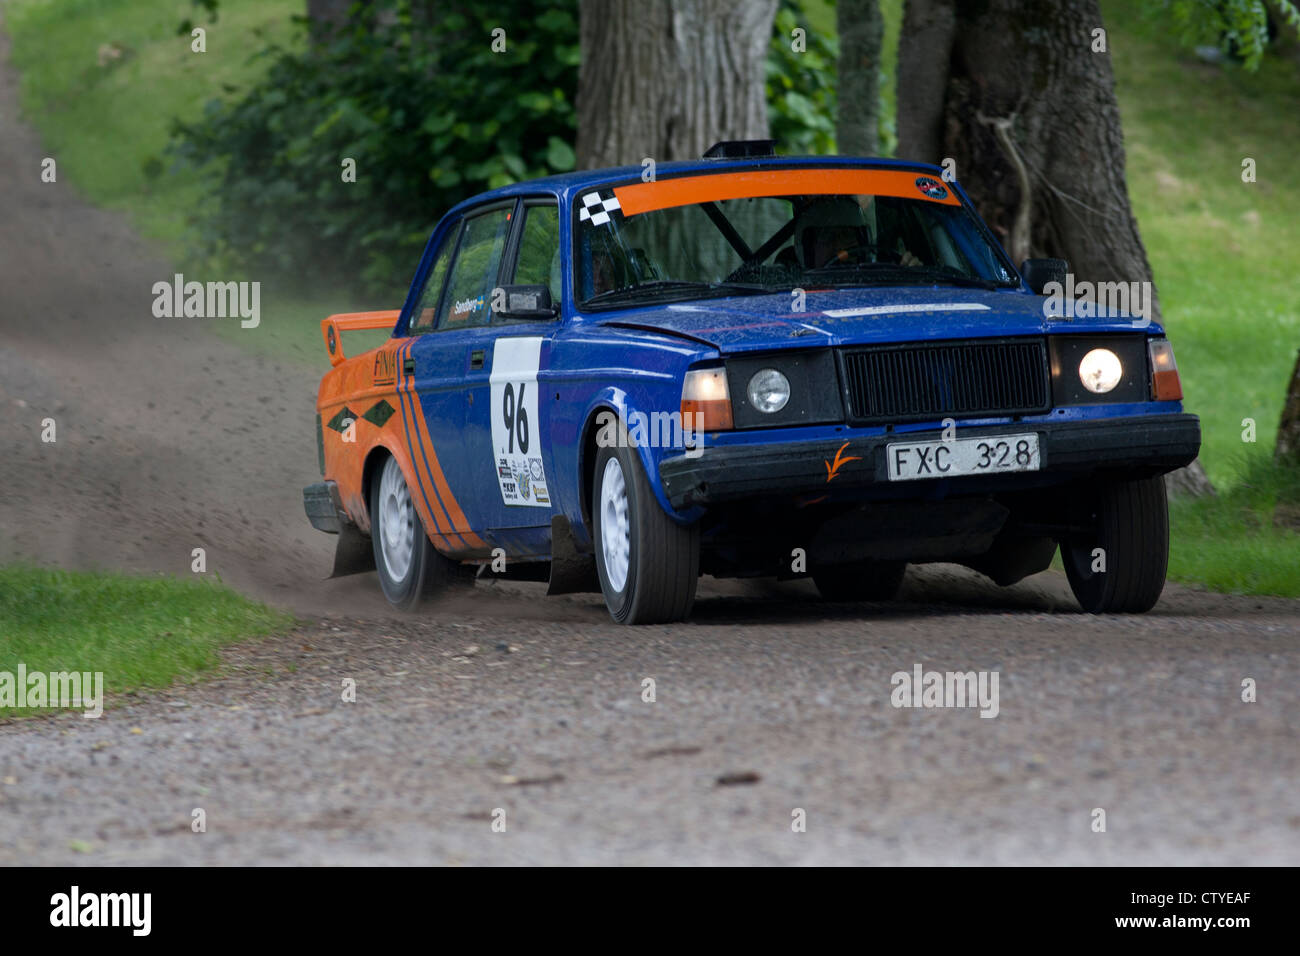 Old rally car on gravel road Stock Photo: 49776455 - Alamy